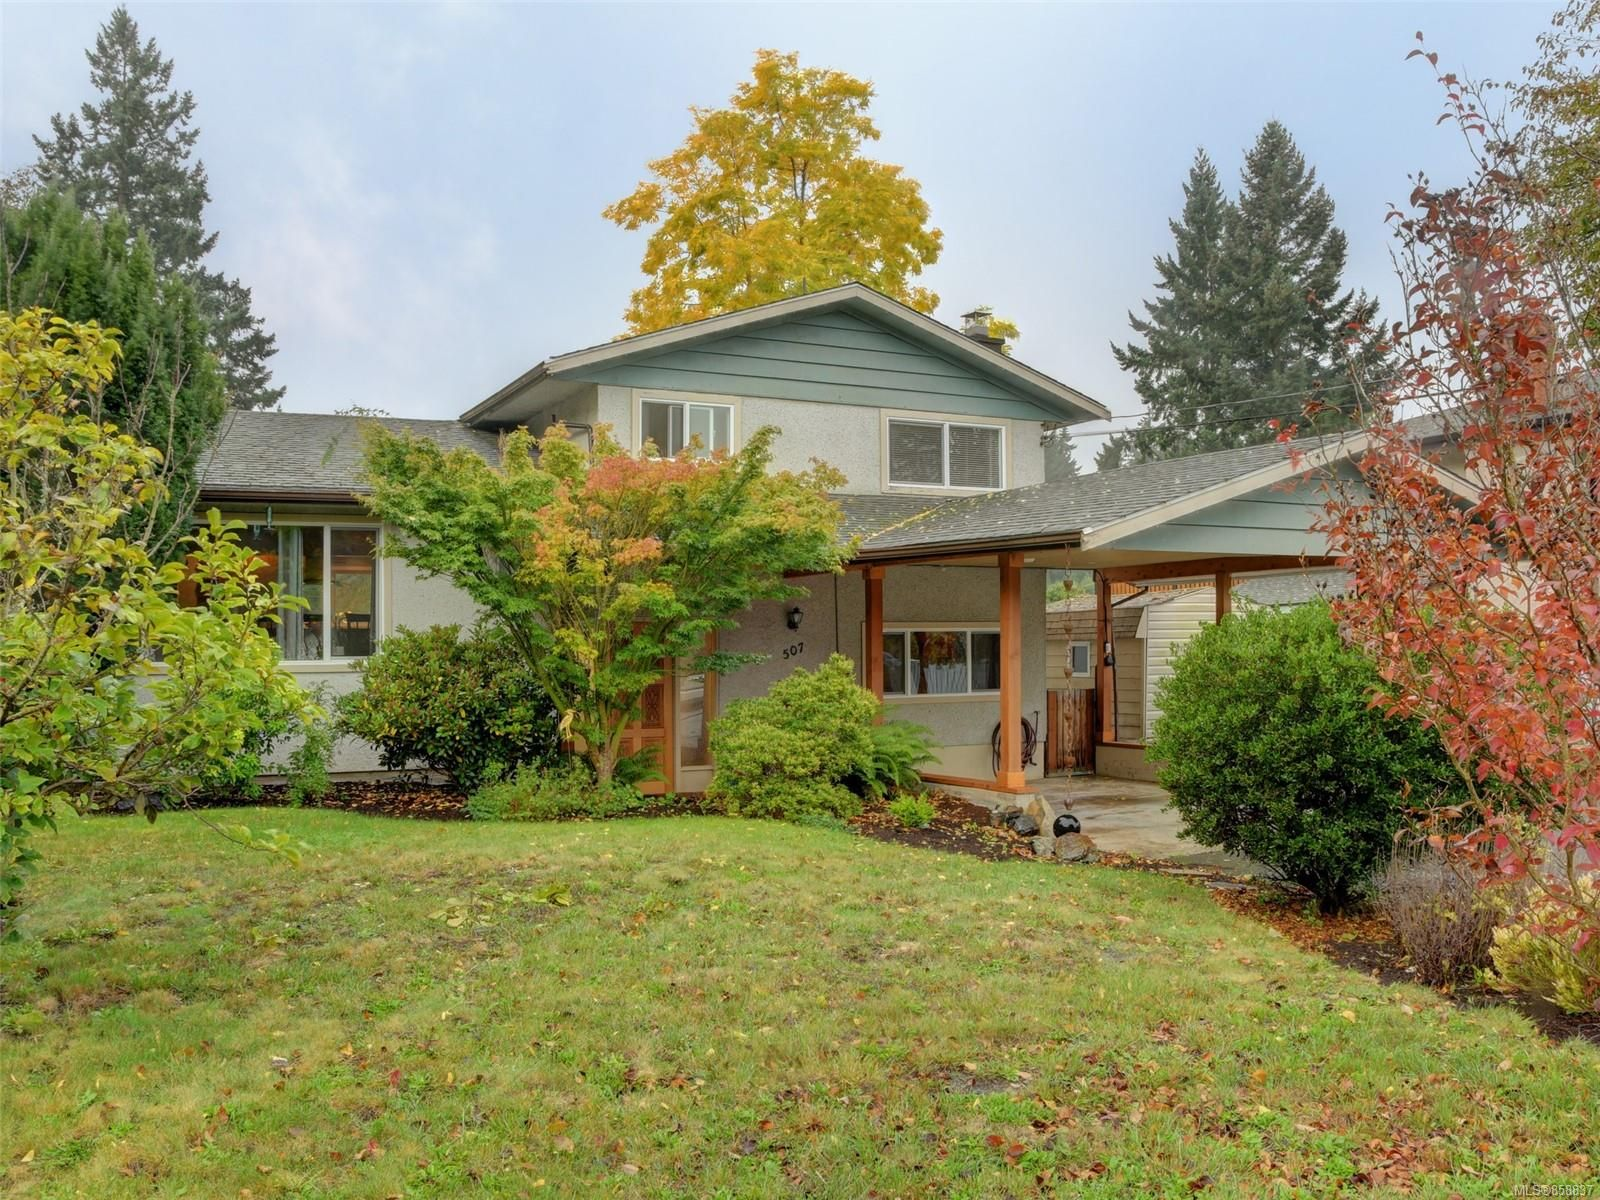 Main Photo: 507 Hallsor Dr in : Co Wishart North House for sale (Colwood)  : MLS®# 858837